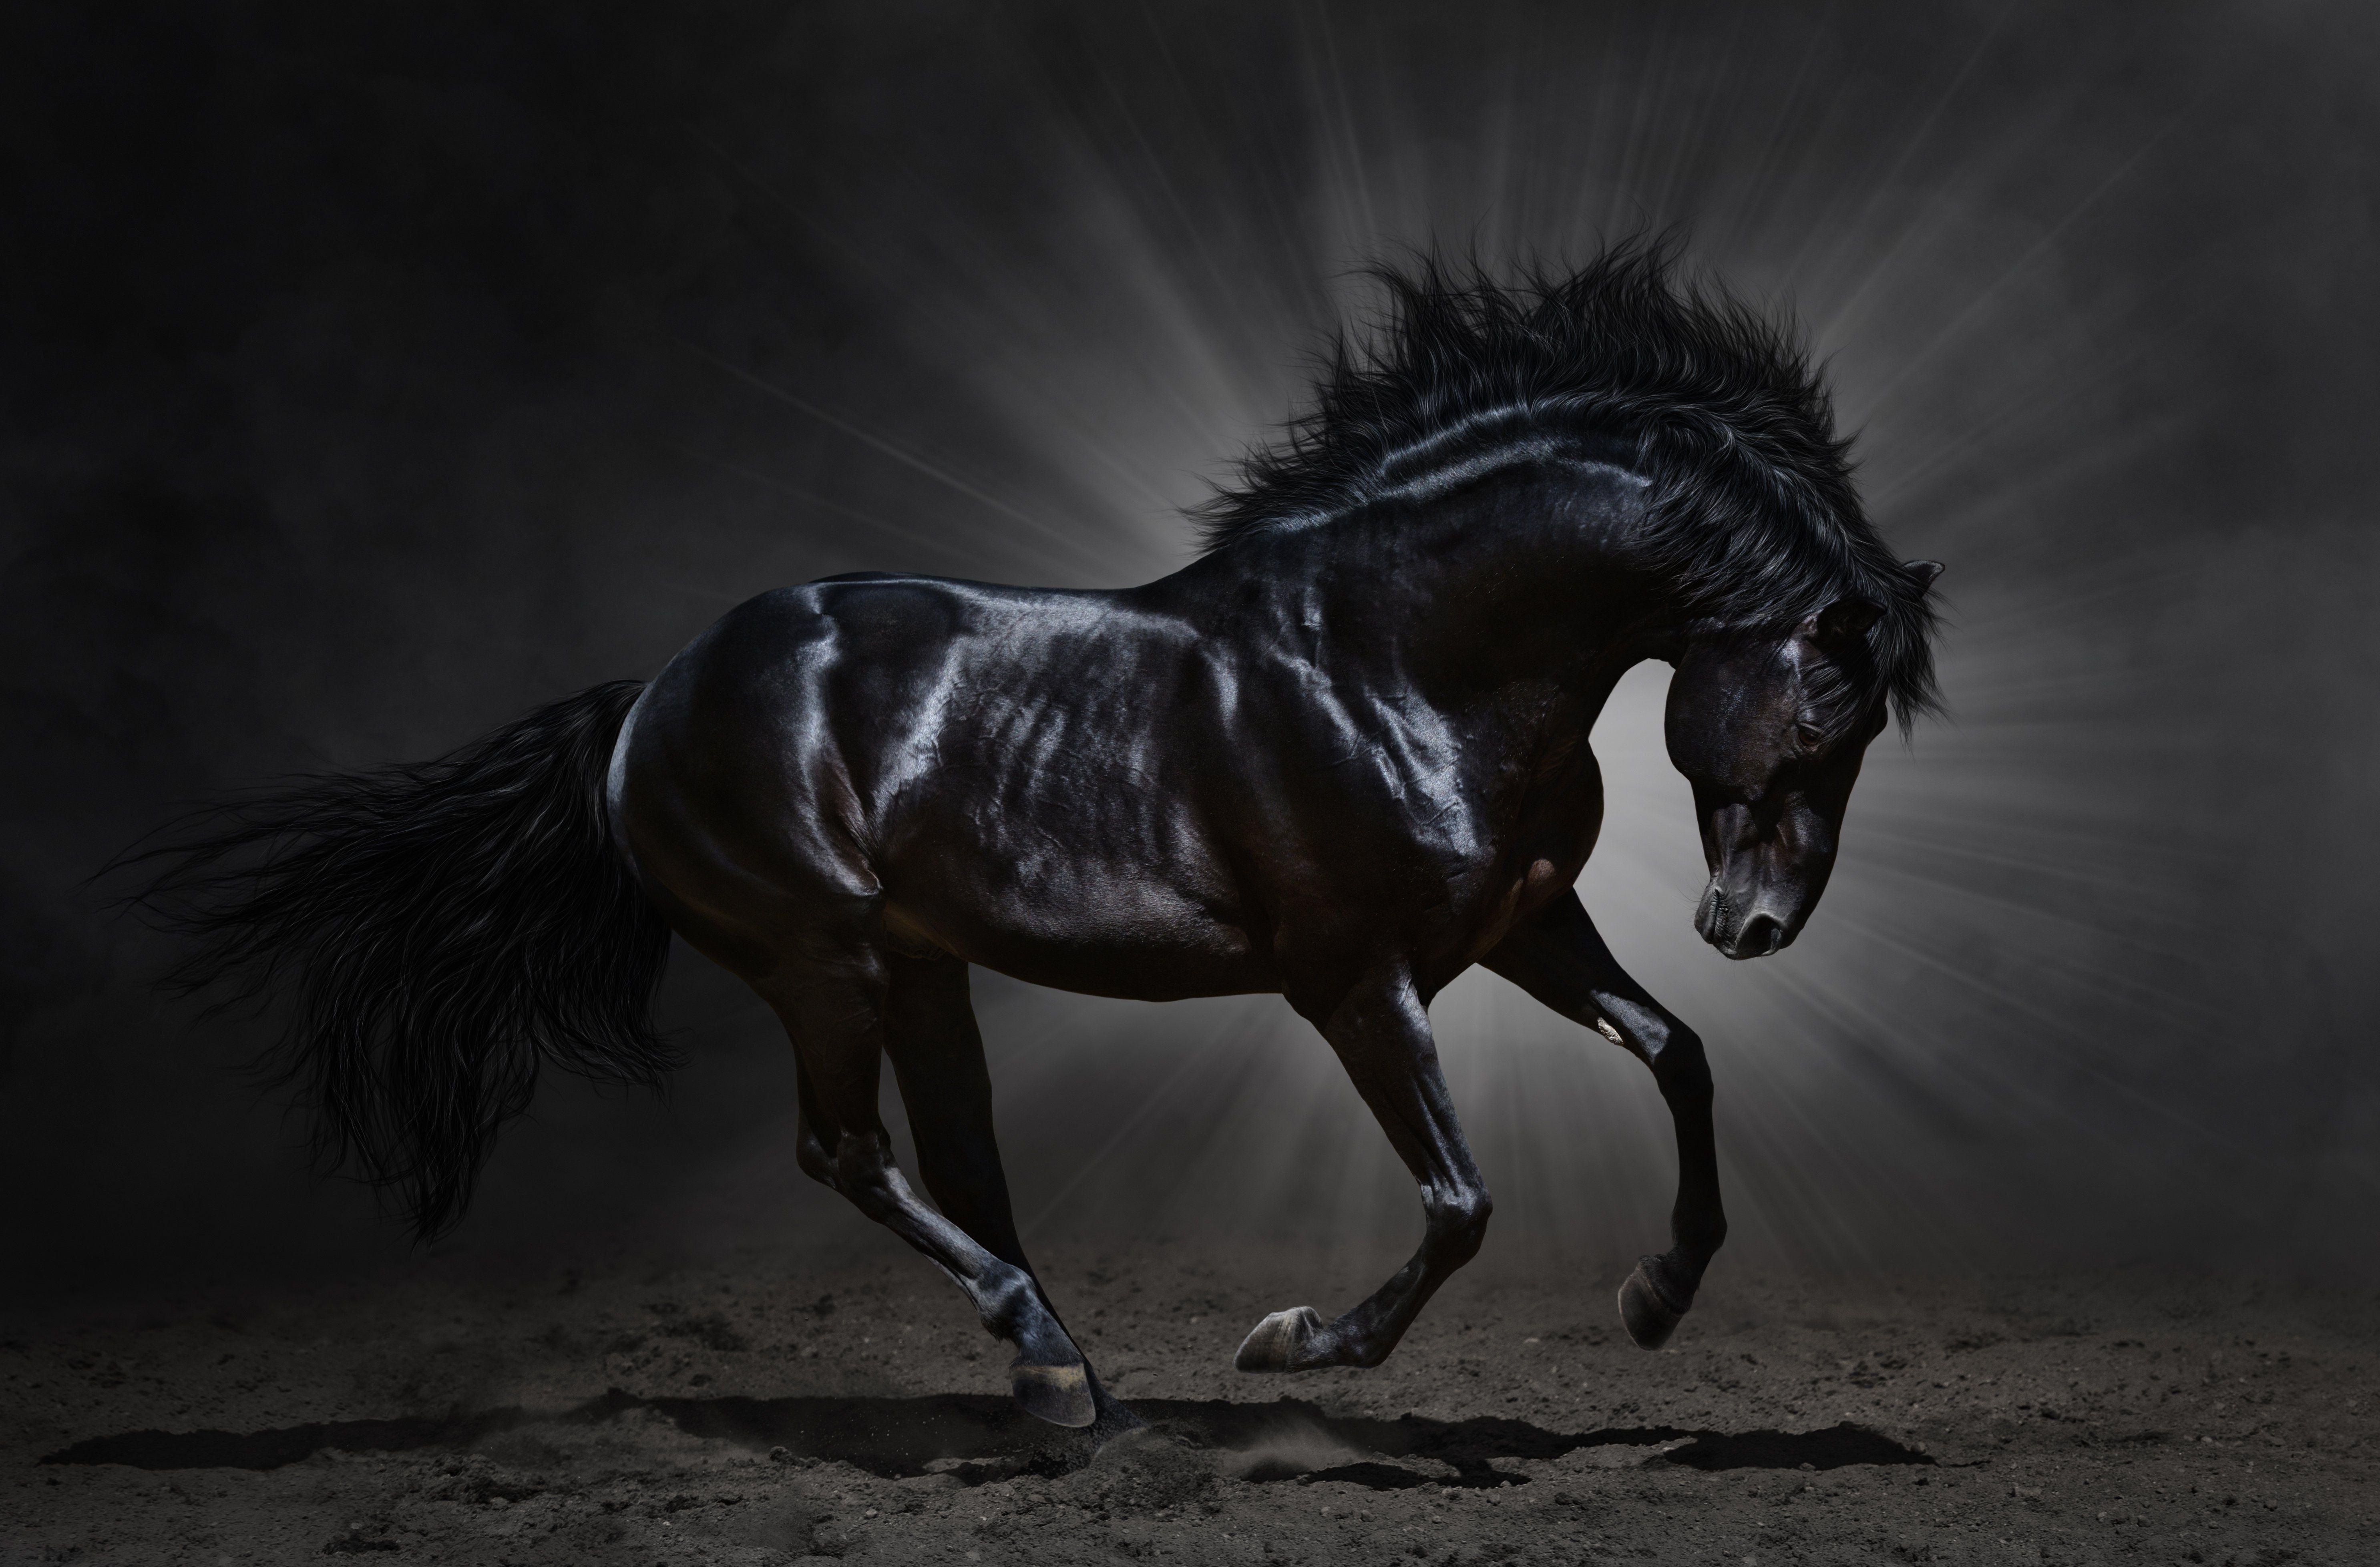 Black Horse Wallpapers - Wallpaper Cave Dark Horse